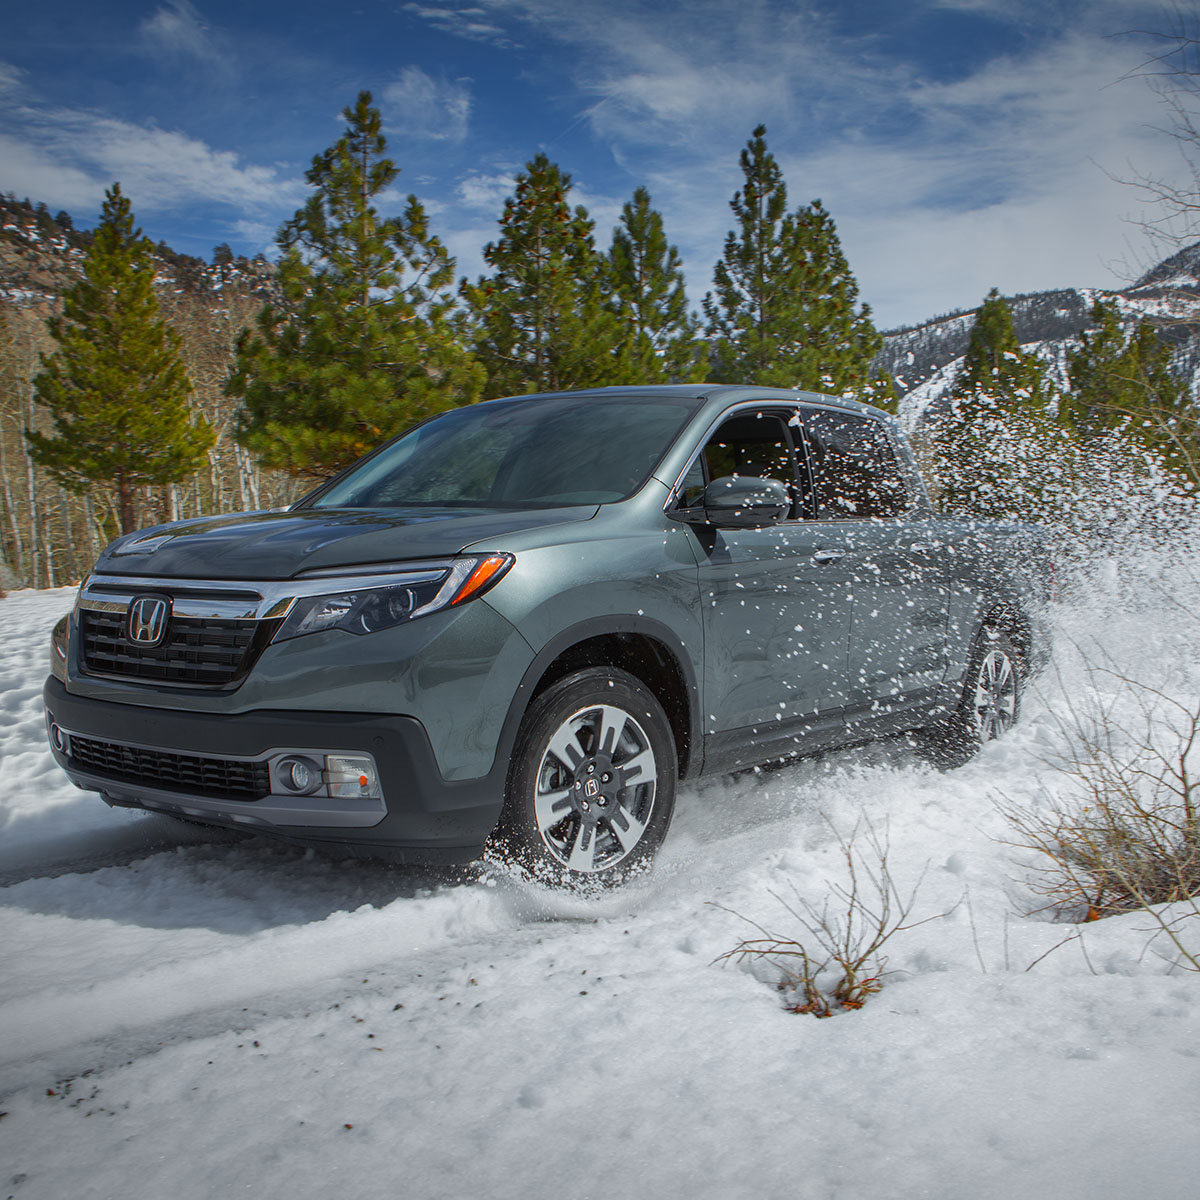 Take on the tough winters with an even tougher pickup; the #HondaRidgeline with available AWD lets you enjoy that winter scenery without worry.